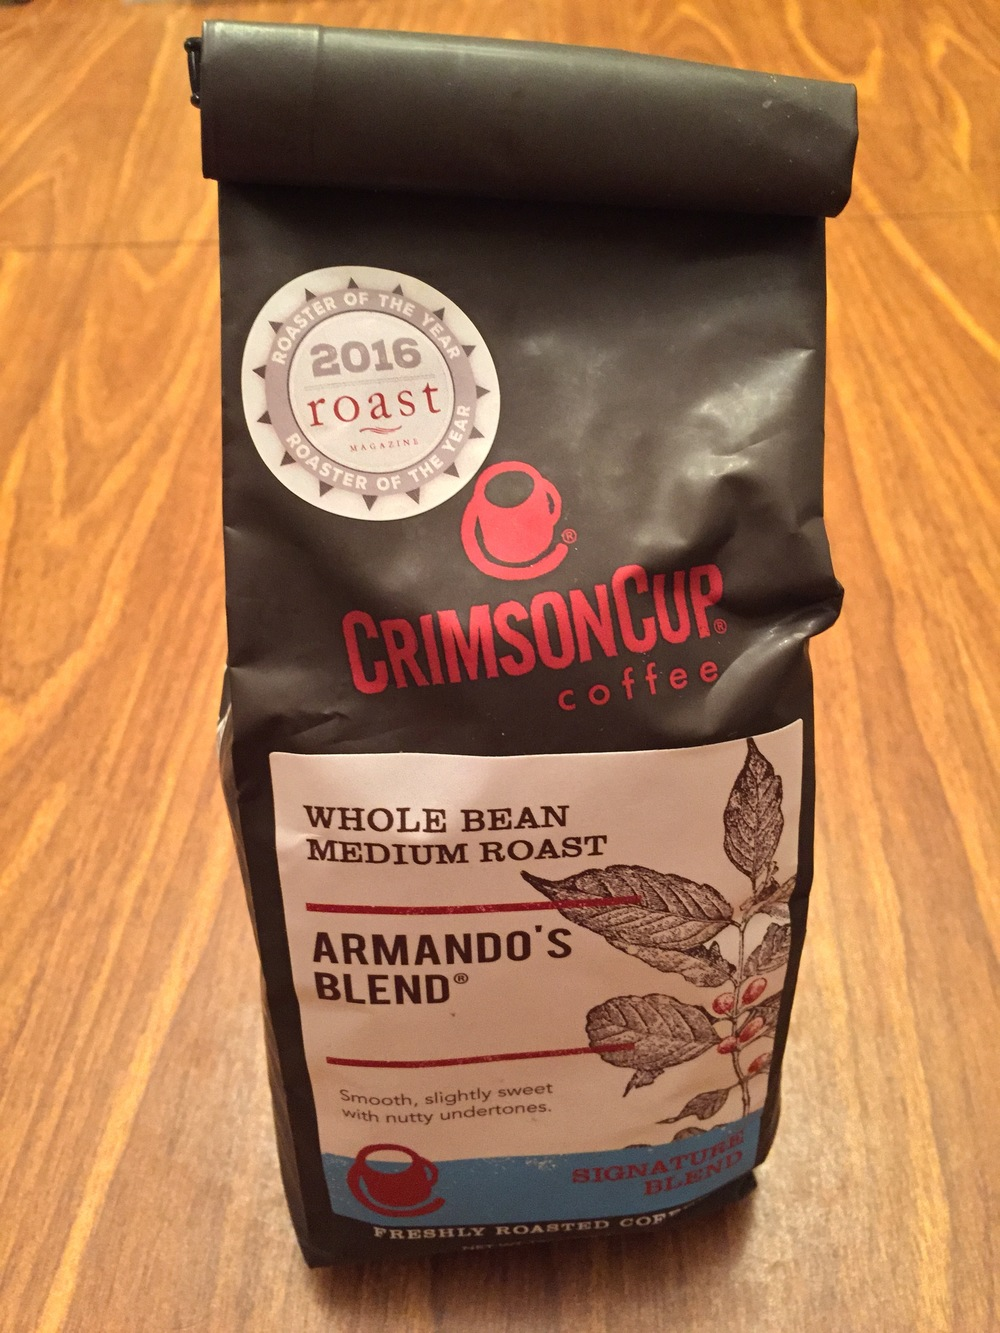 The Crimson Cup medium roast is the bean of choice at Java Joint. It'll give you Chuck Yeager power for your next bike ride.